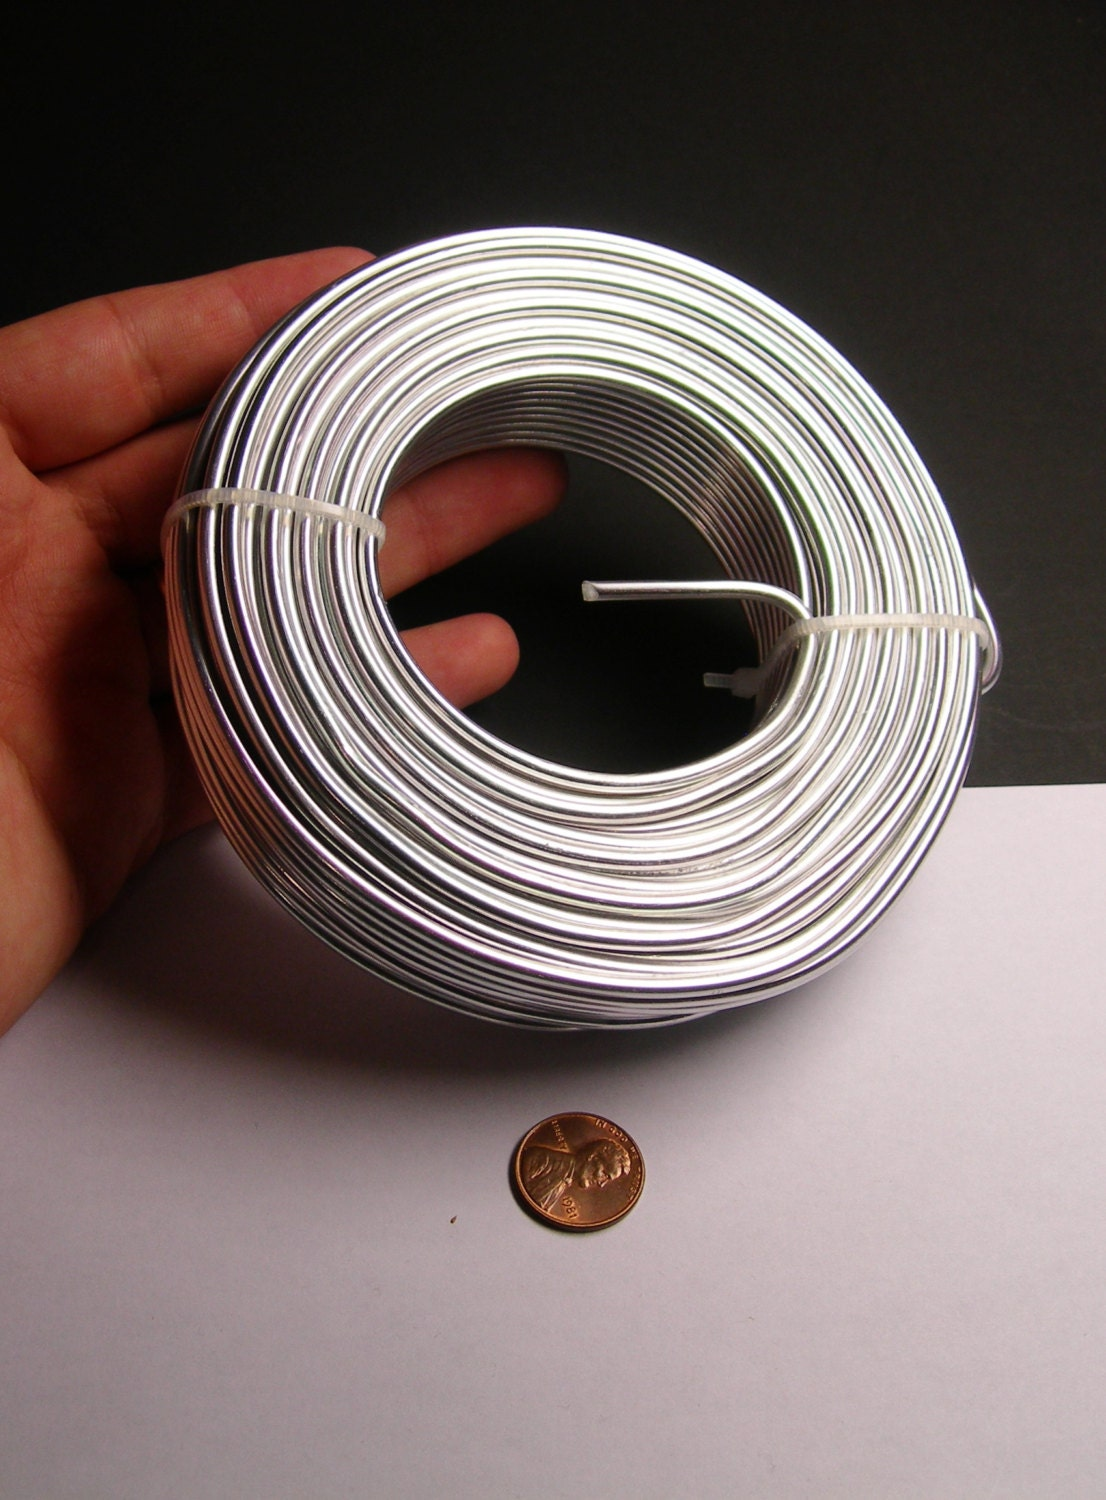 Aluminum wire 9 gauge - 3mm - 78 foot rool - good quality - silver ...